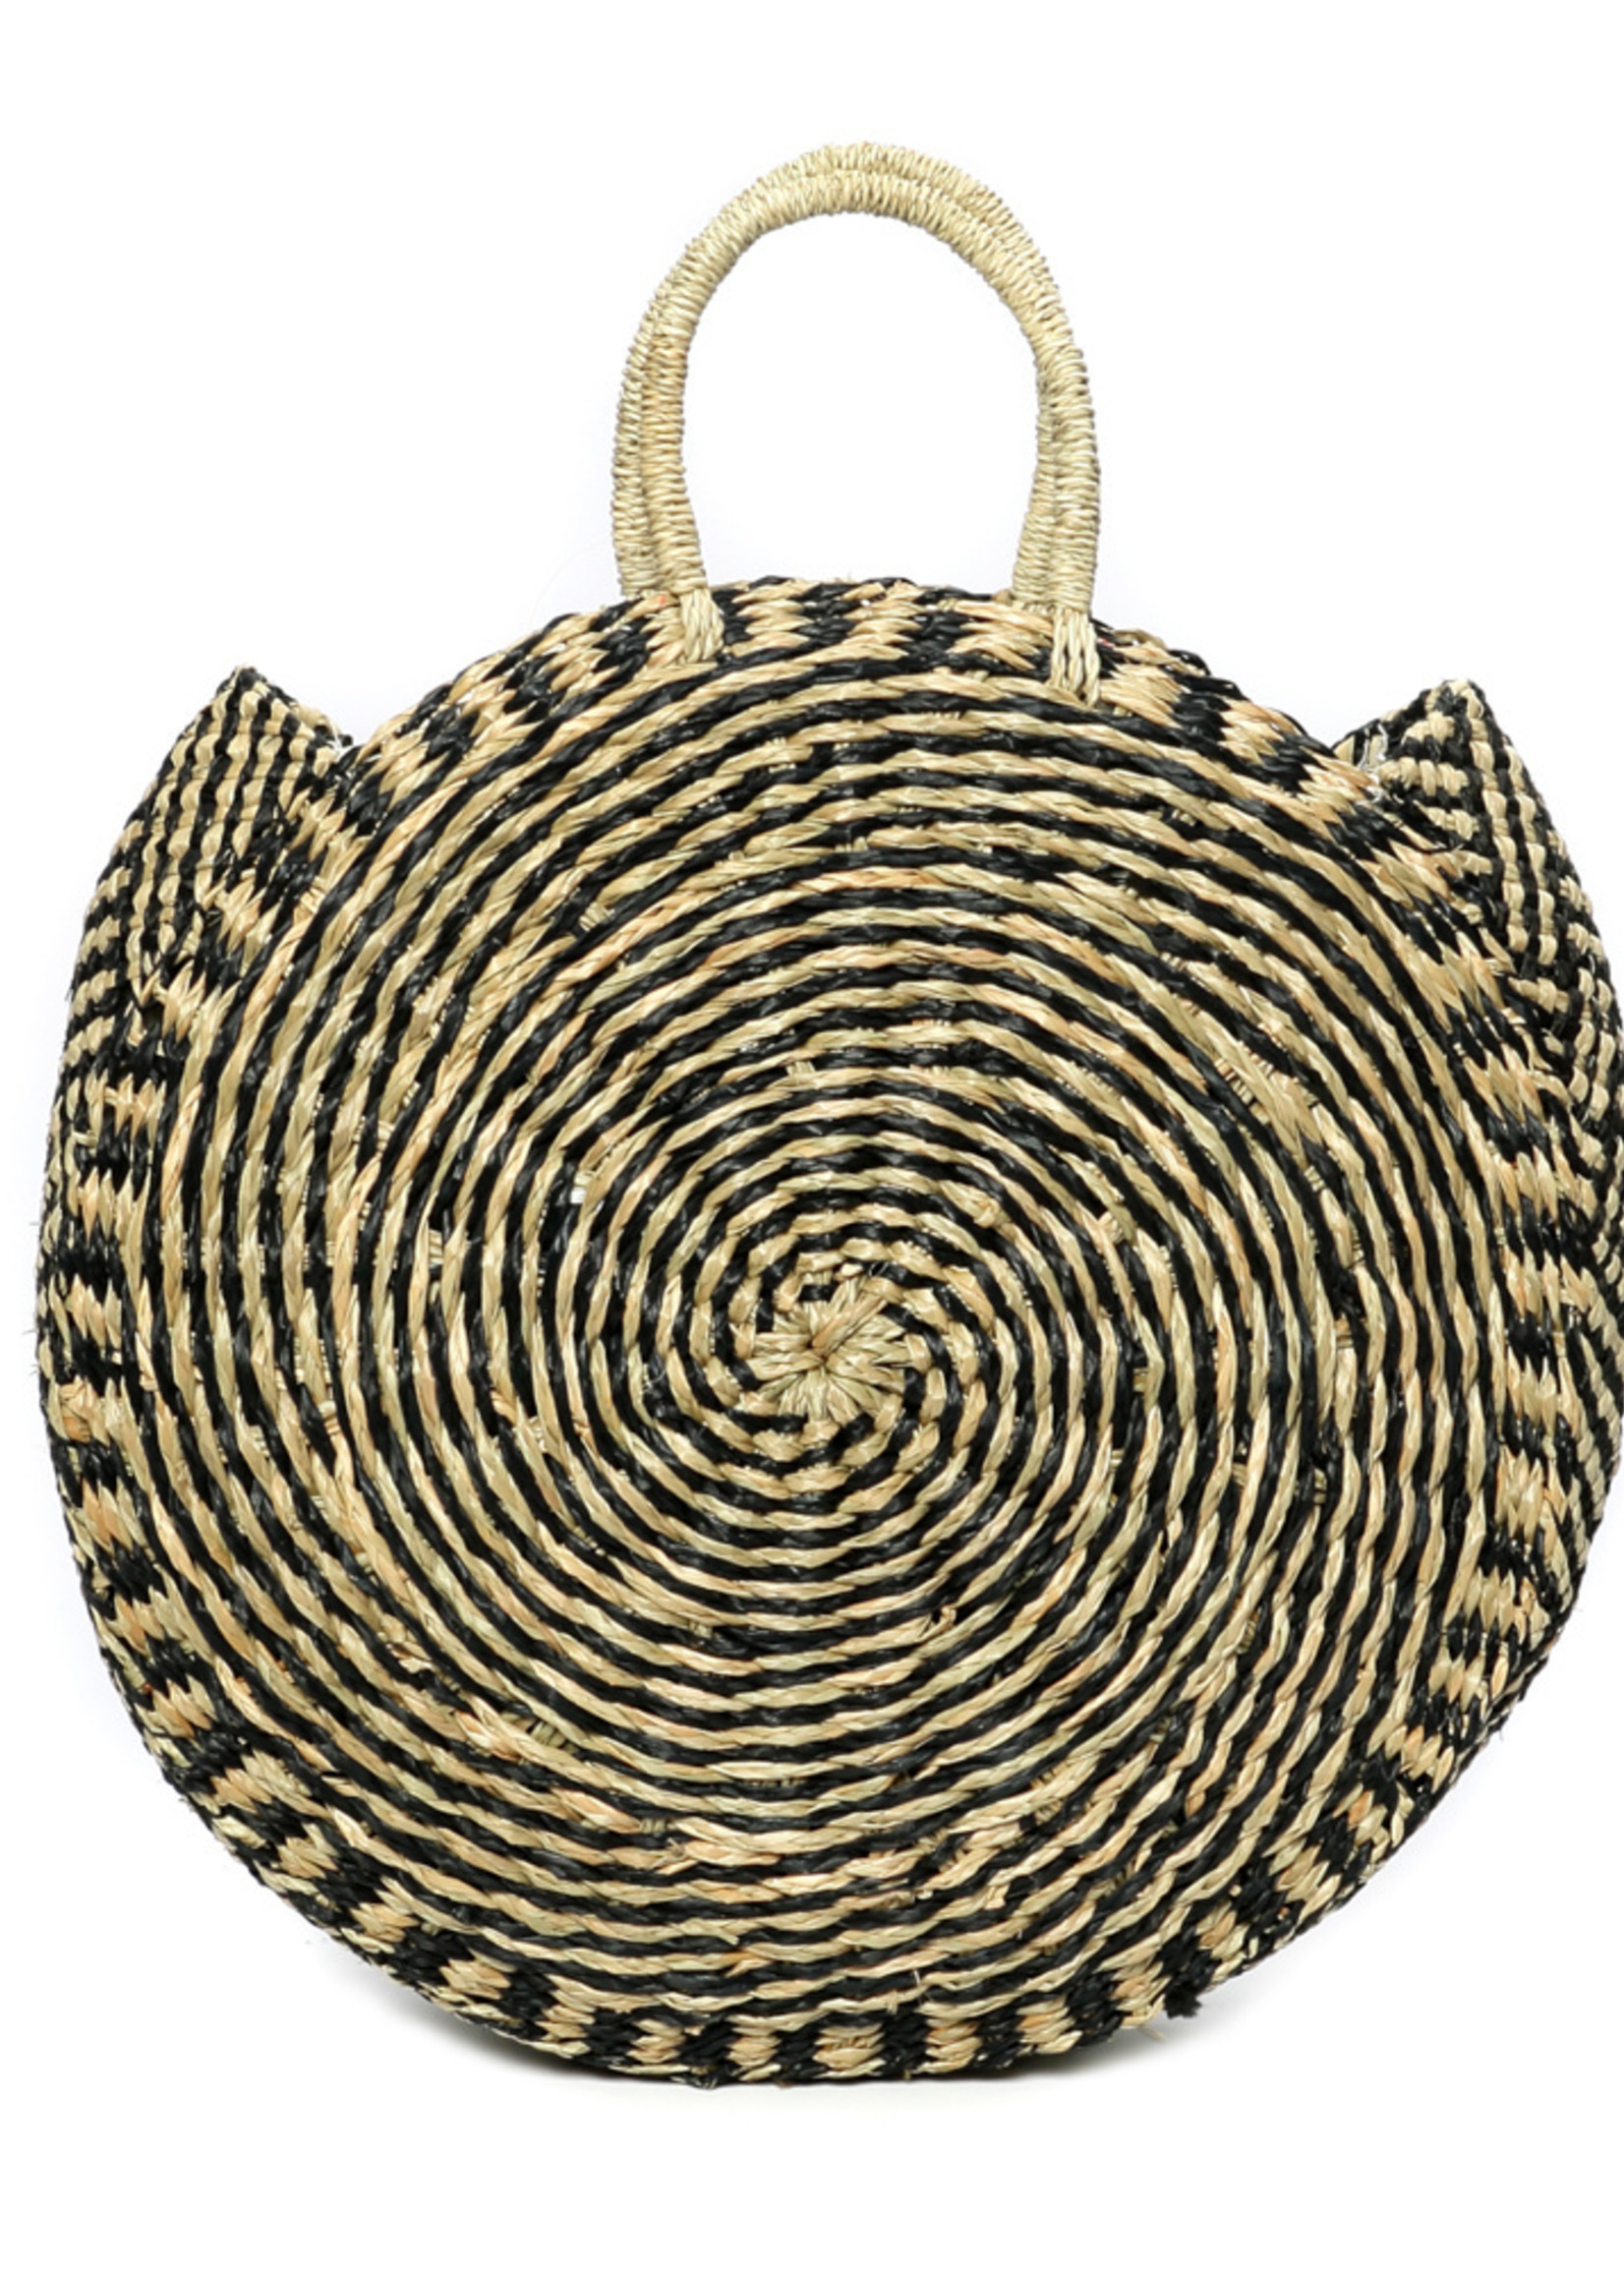 The Seagrass Twisted Roundi Bag  - Natural Black - L